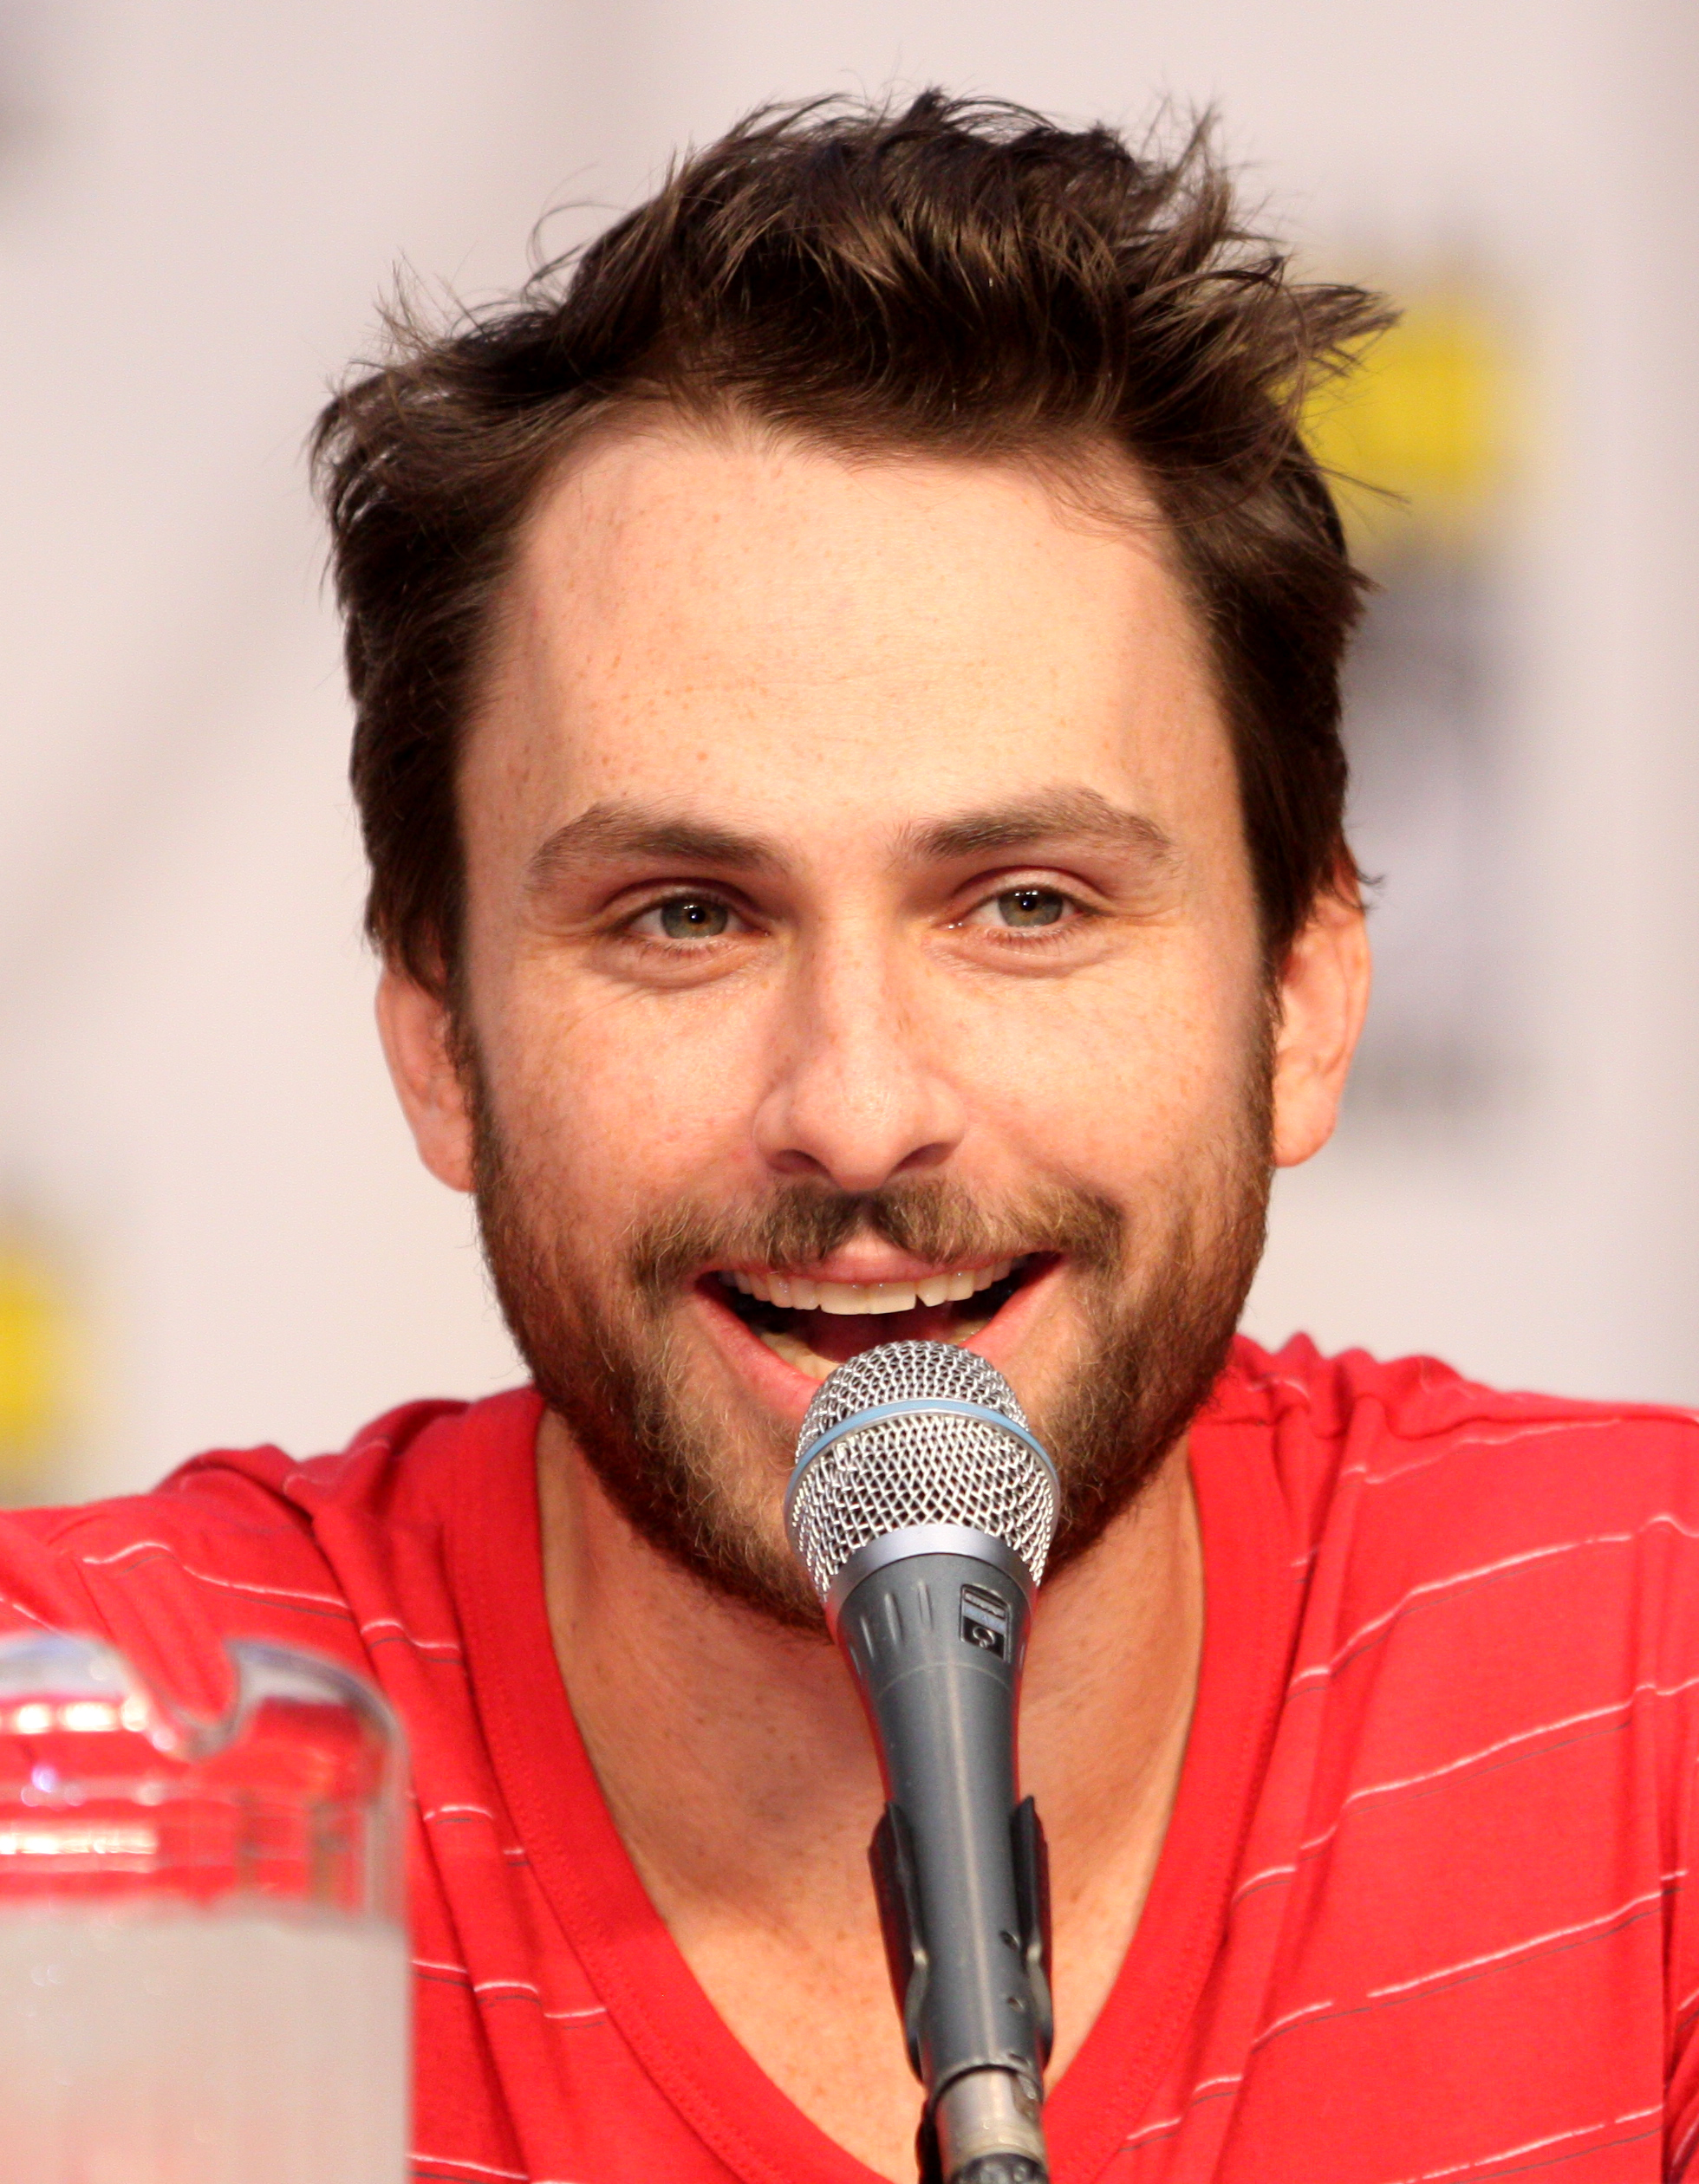 The 41-year old son of father Thomas C. Day and mother Mary Day, 169 cm tall Charlie Day in 2017 photo